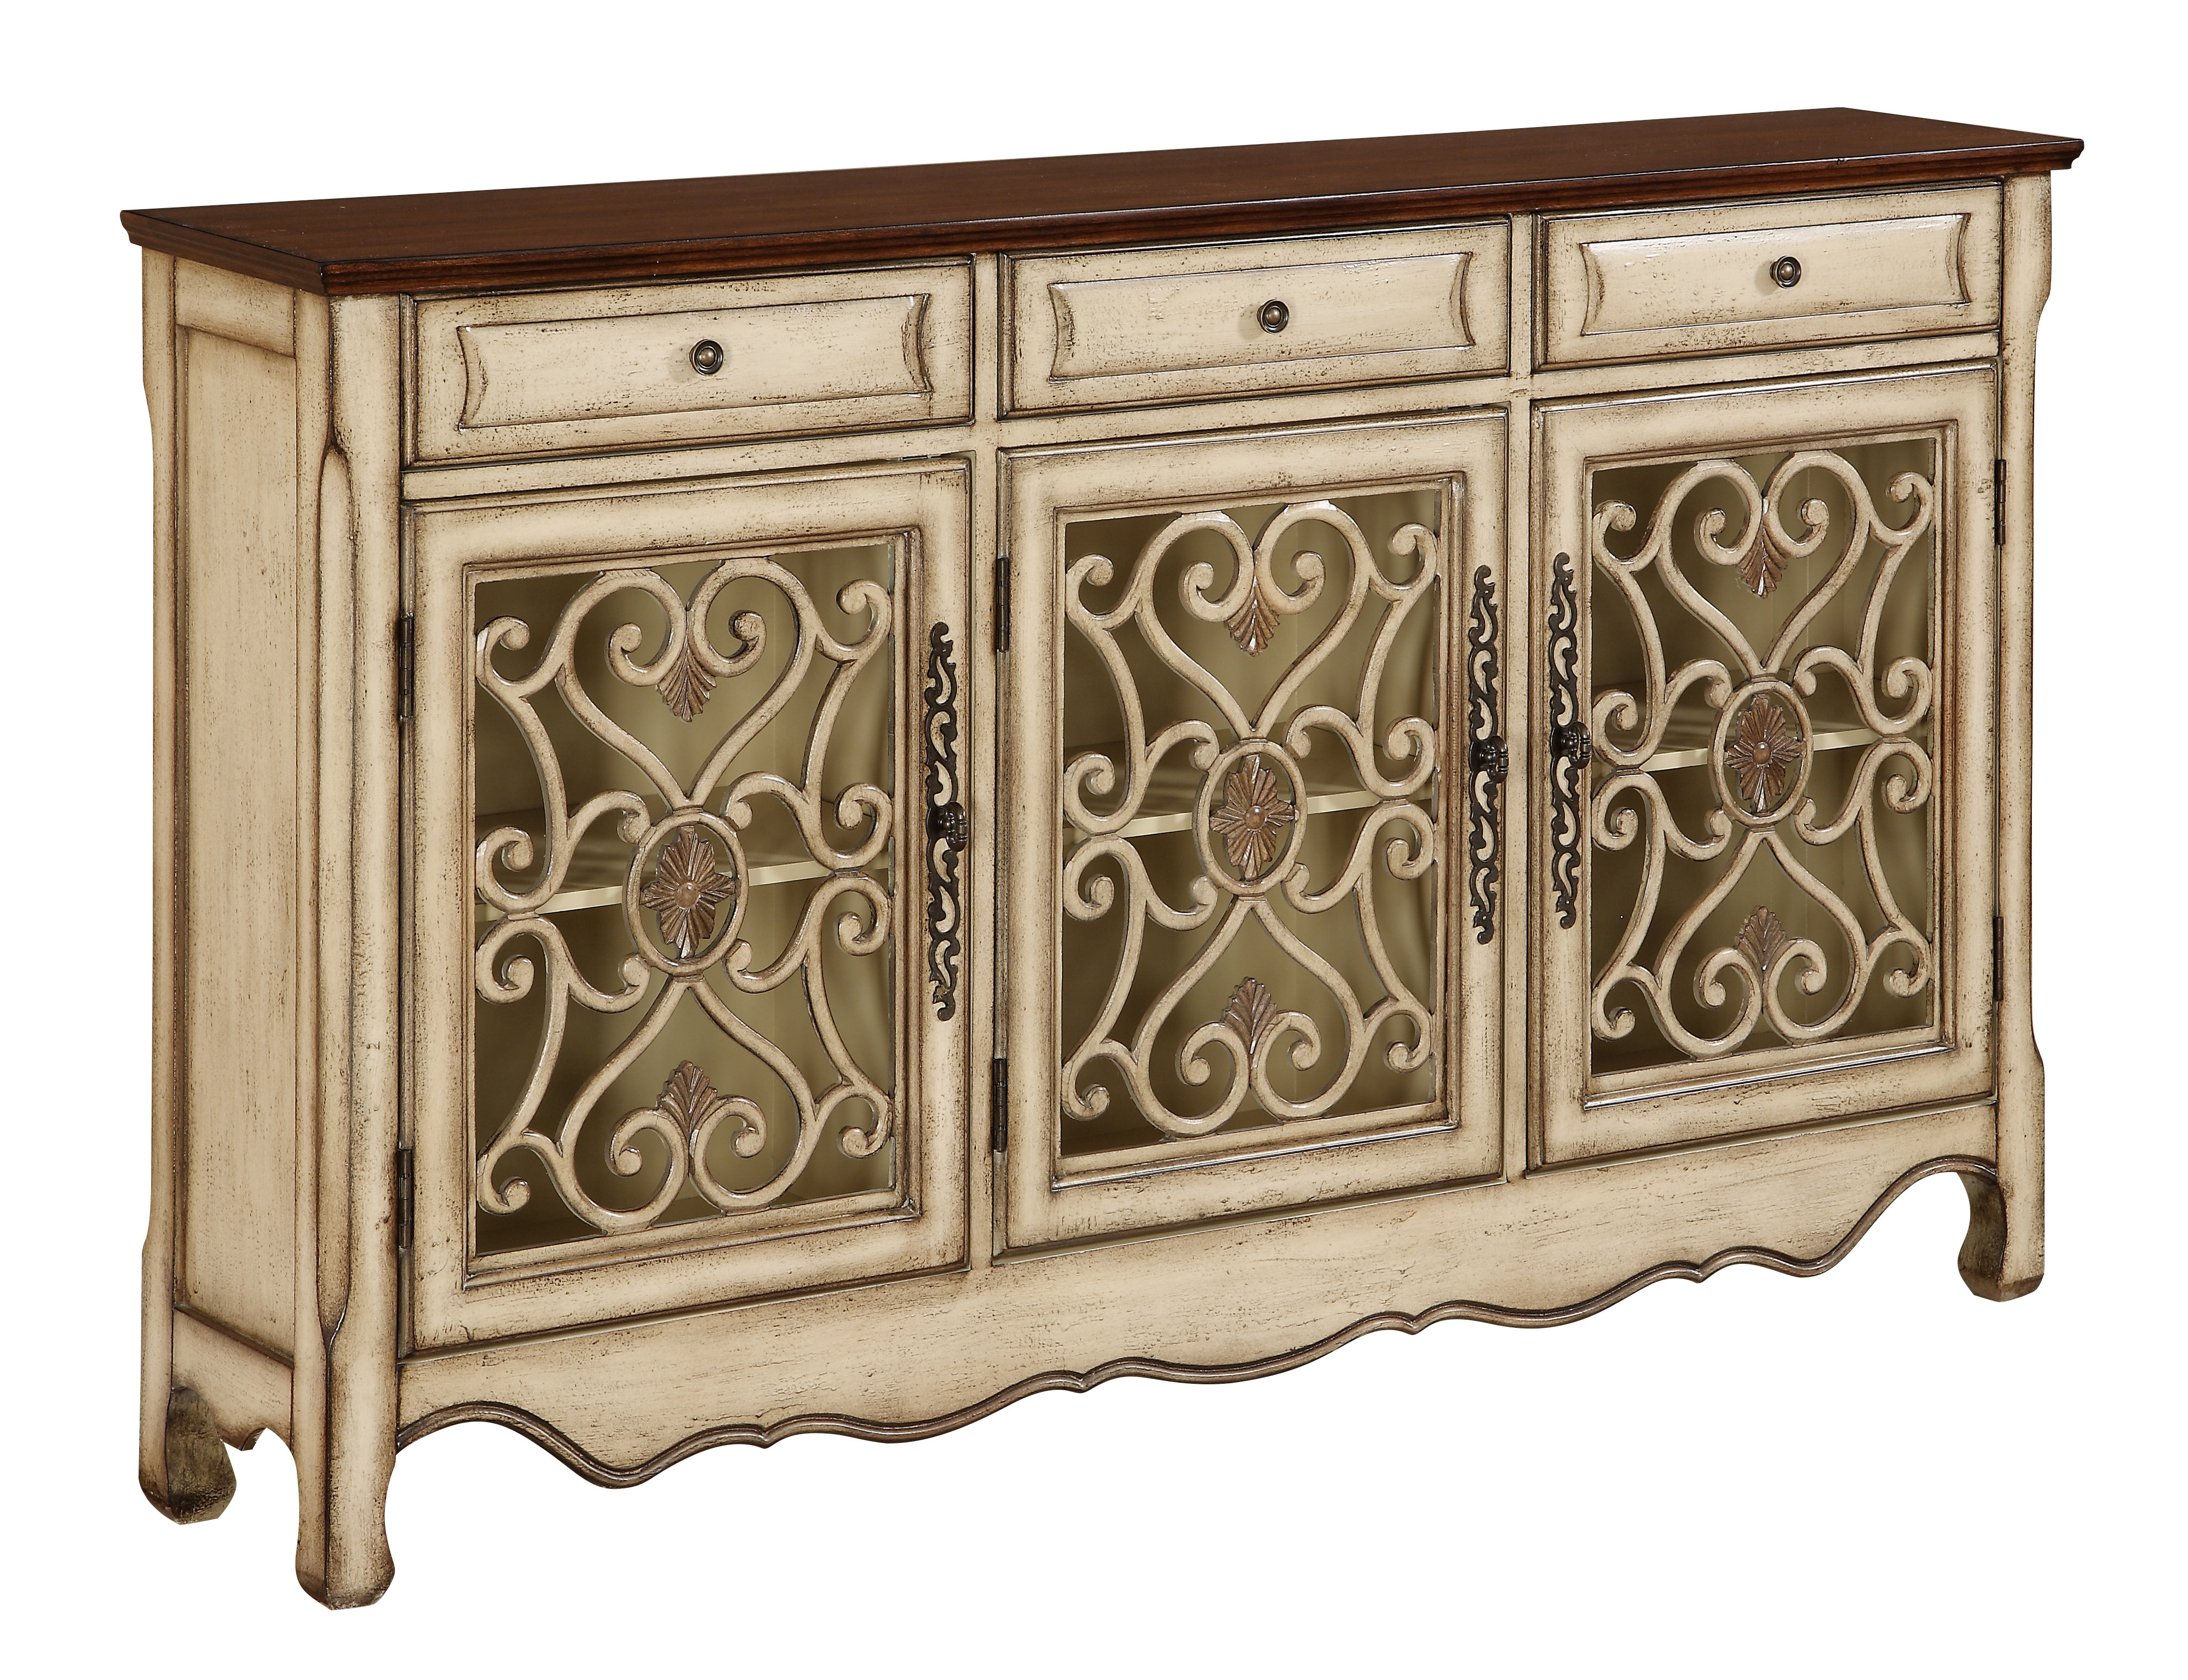 Farmhouse & Rustic Sideboards & Buffets | Birch Lane Within Ilyan Traditional Wood Sideboards (View 9 of 20)